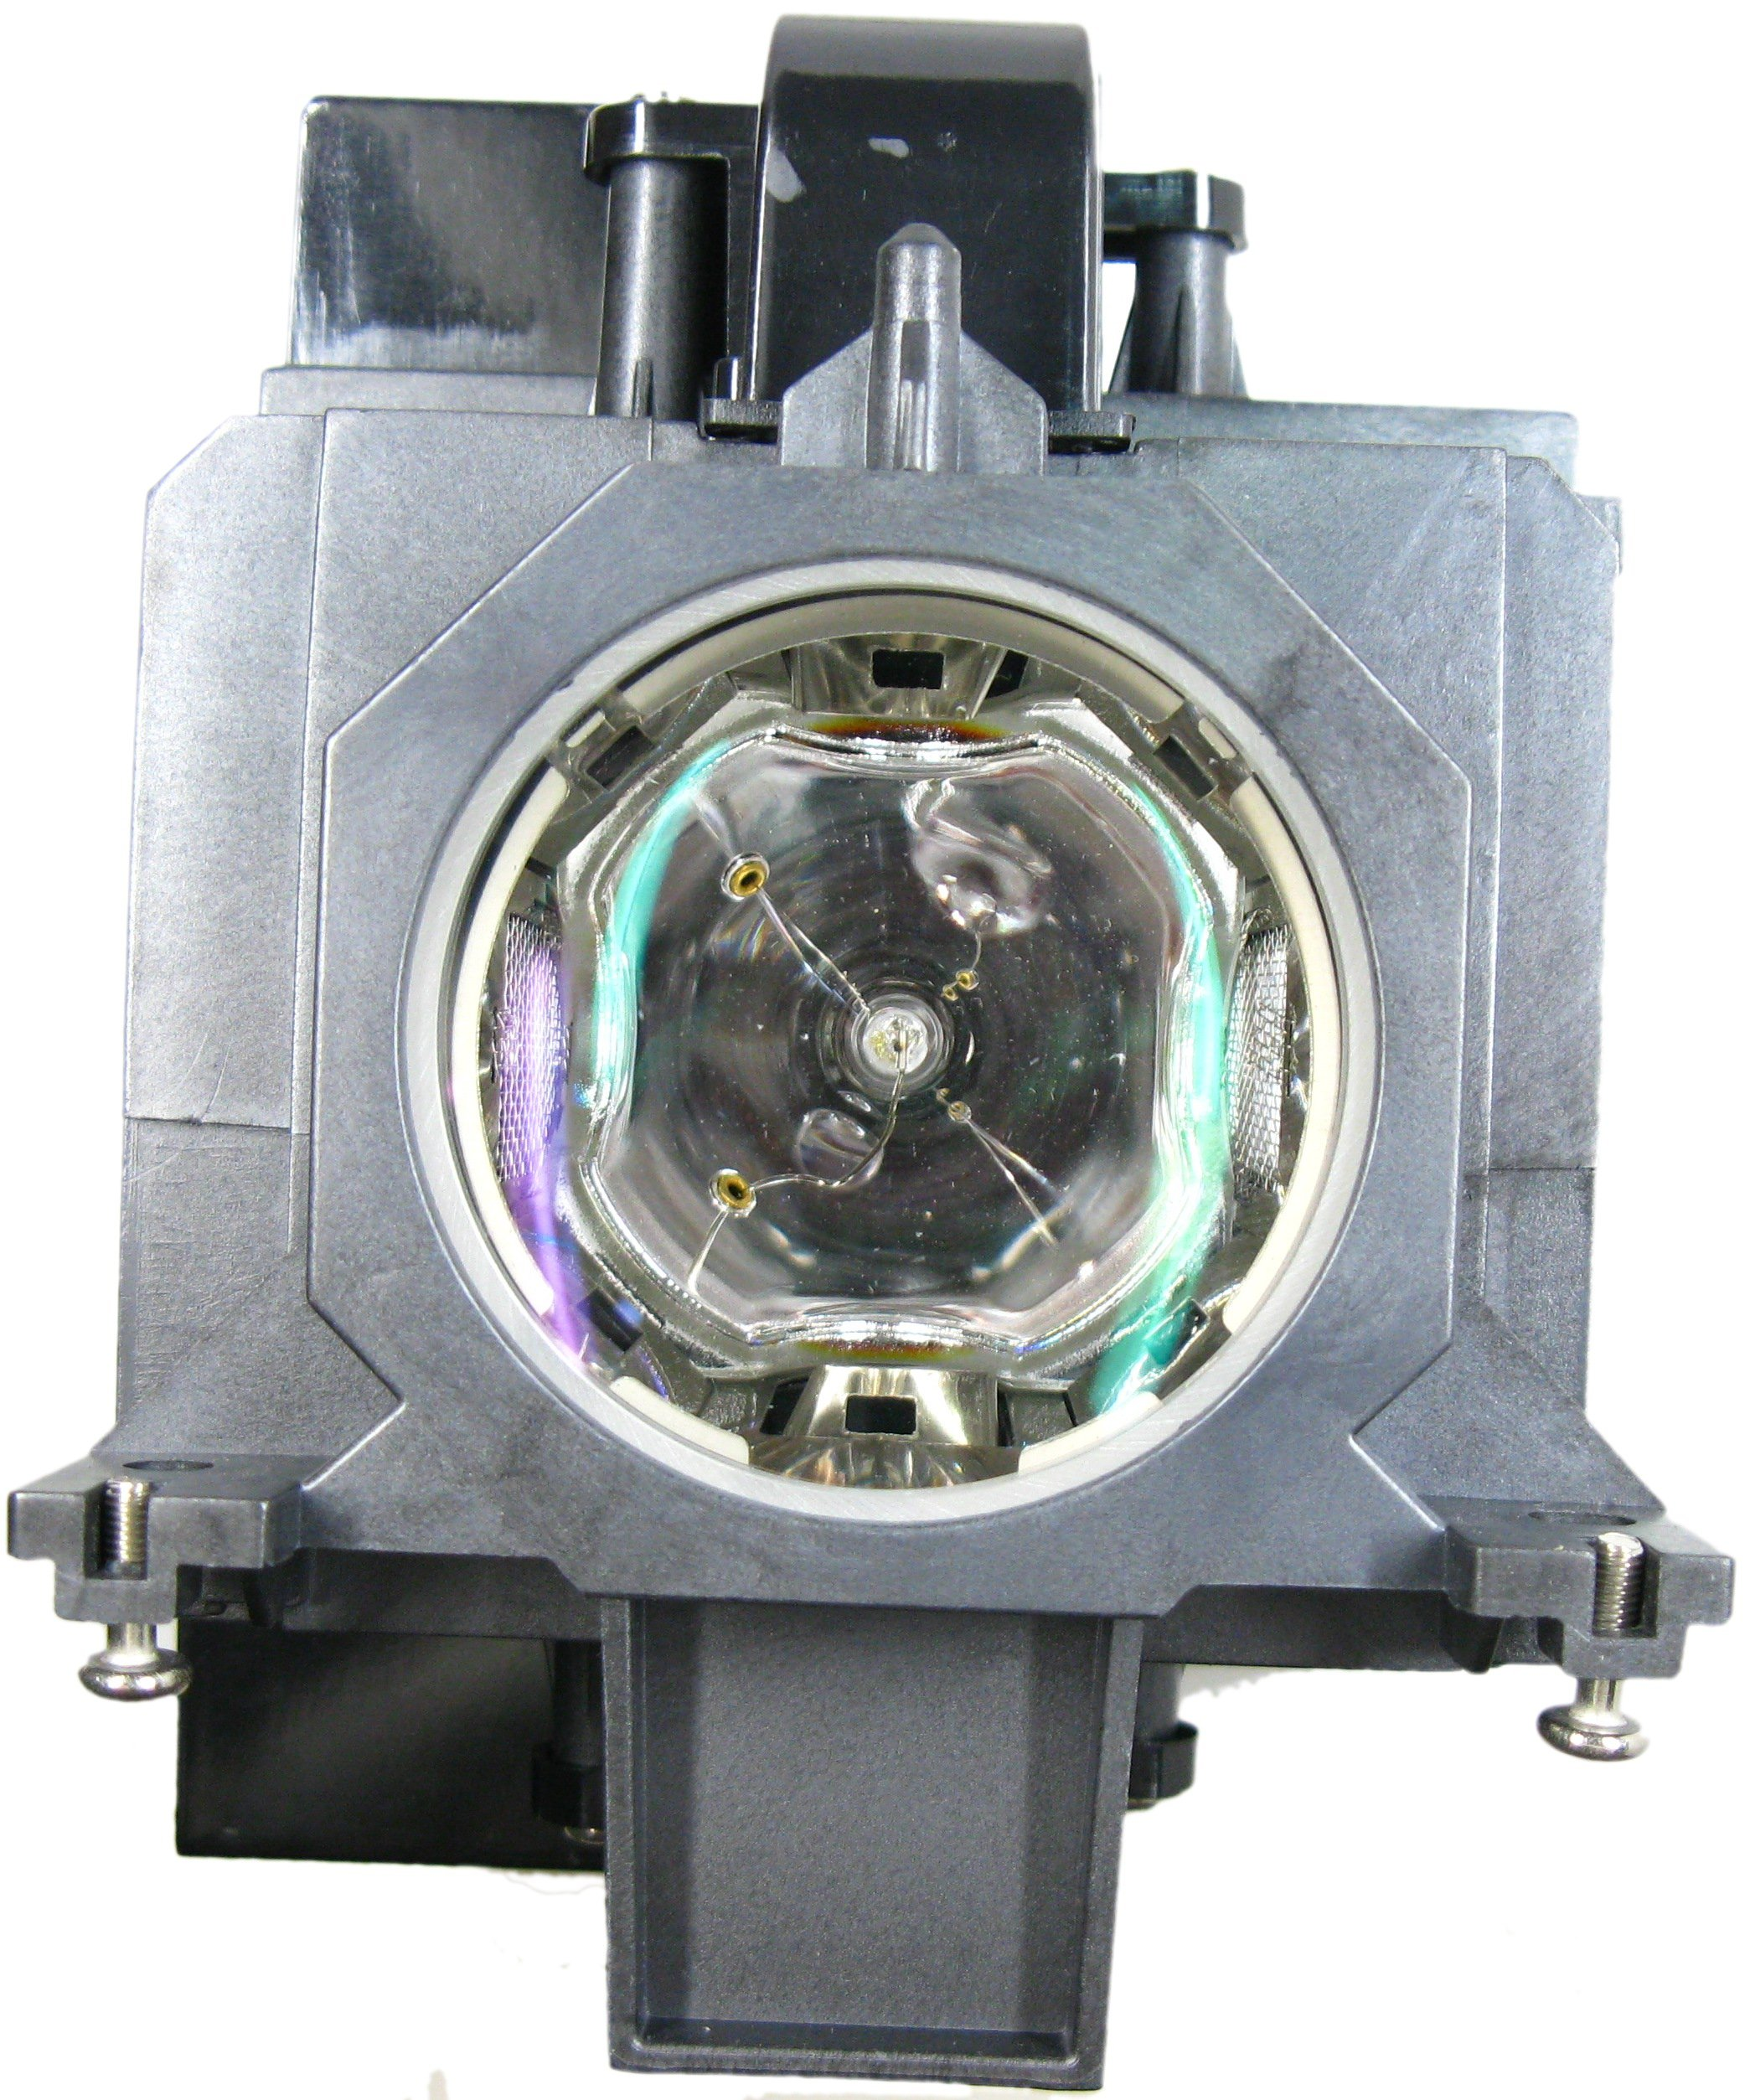 V7 VPL2177-1N Lamp for select Sanyo, Eiki, Christie projectors